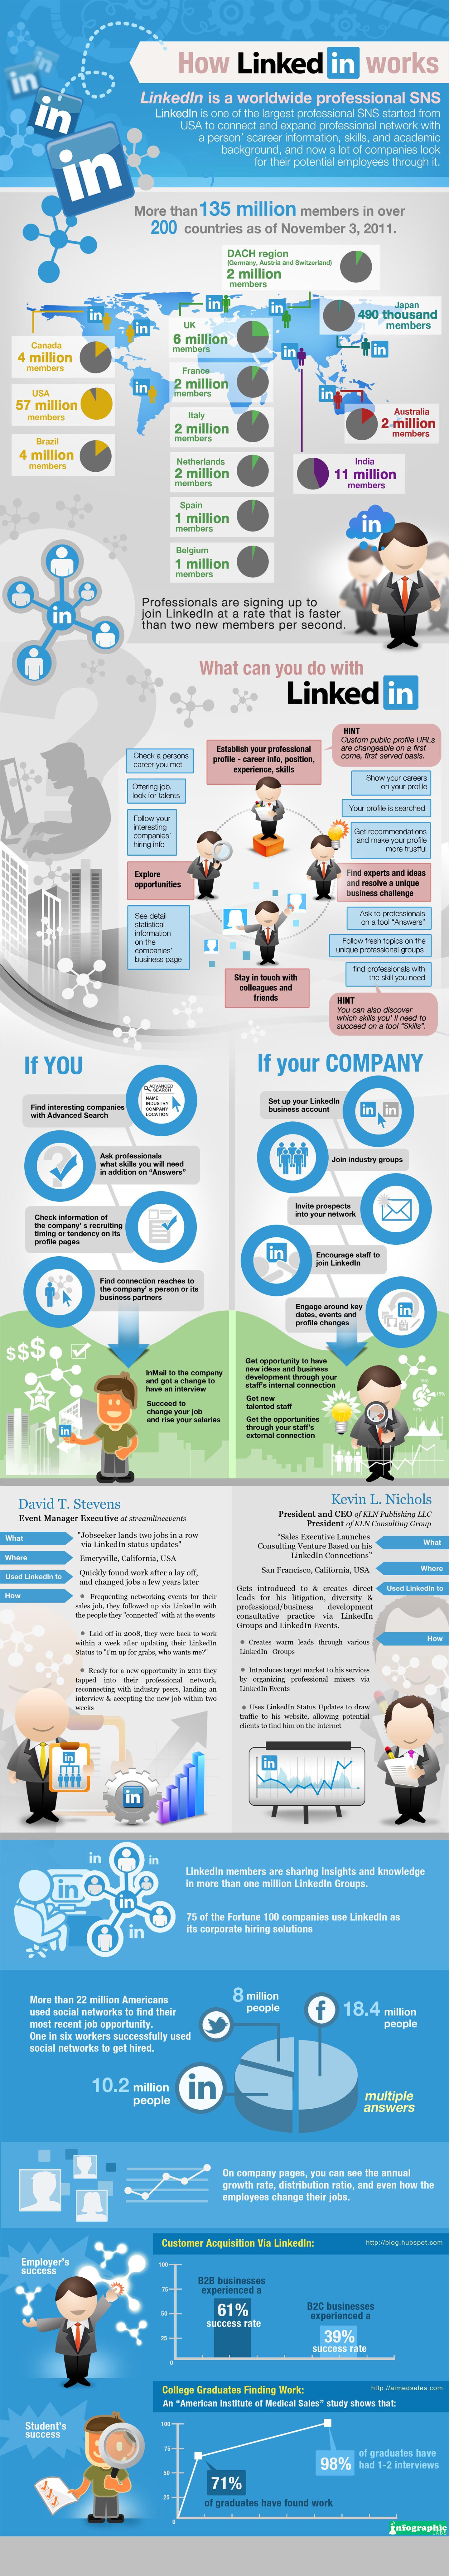 linkedin guide how it works infographics this infographic created by infographic labs provides a detailed explanation of how linkedin works and some statistics about the network s membership